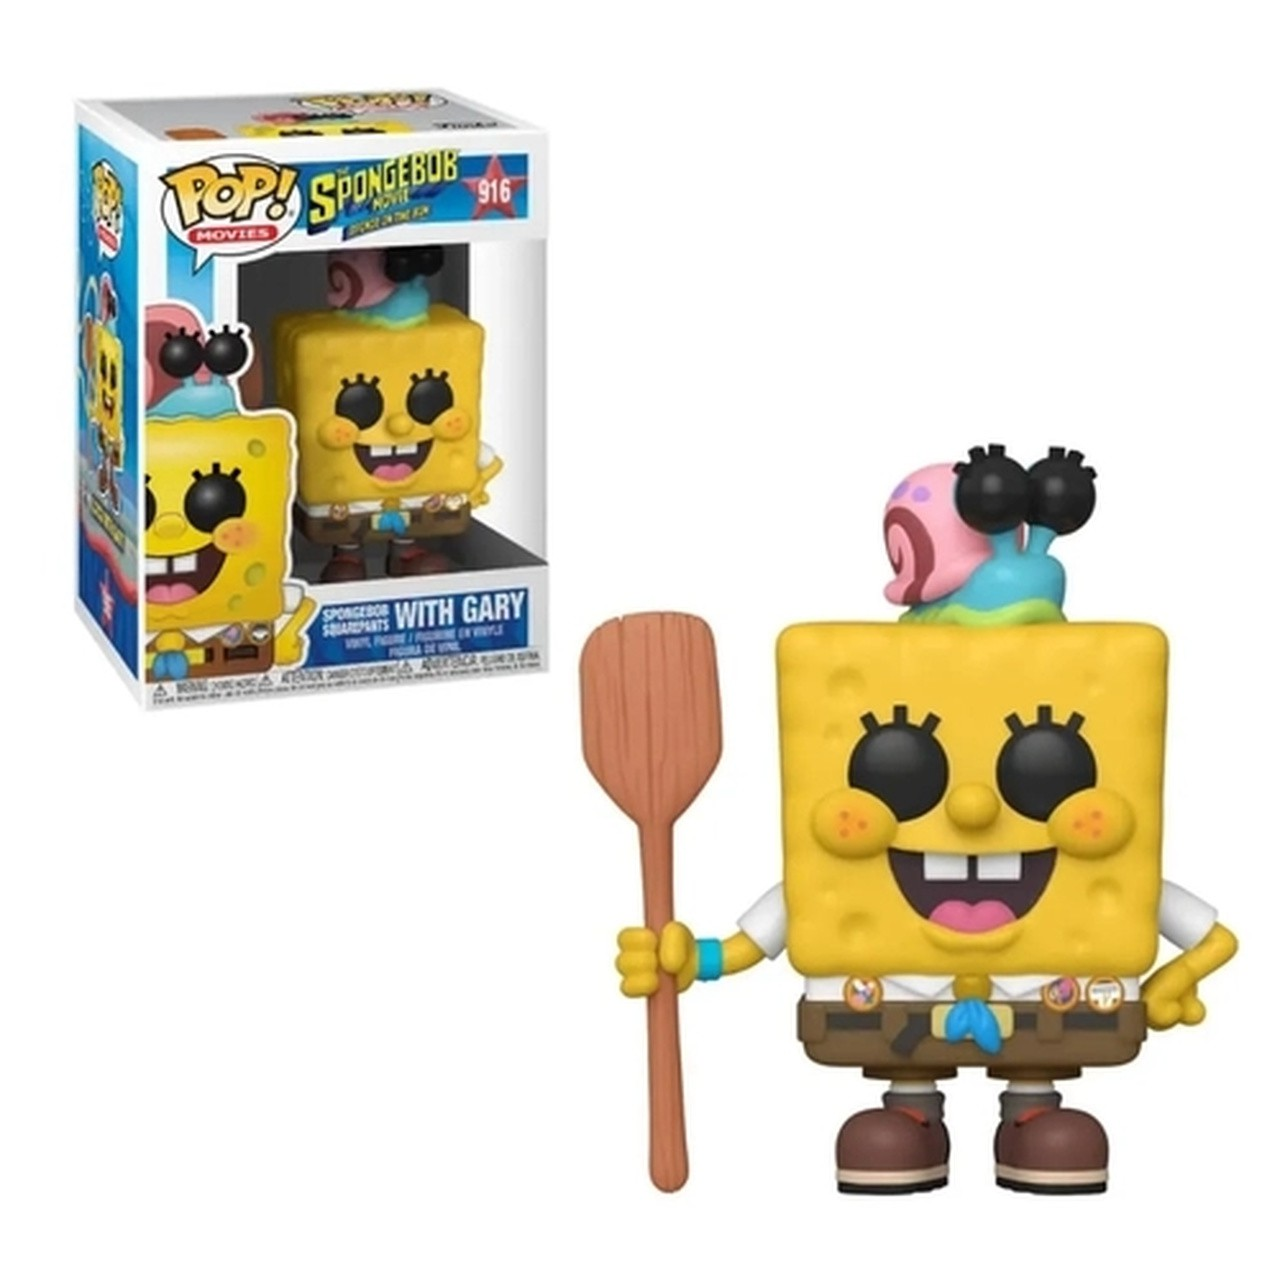 PRÉ VENDA: Funko Pop! Bob Esponja no Camping (Spongebob in Camping): Bob Esponja - O Incrível Resgate (Sponge On The Run) #916 - Funko